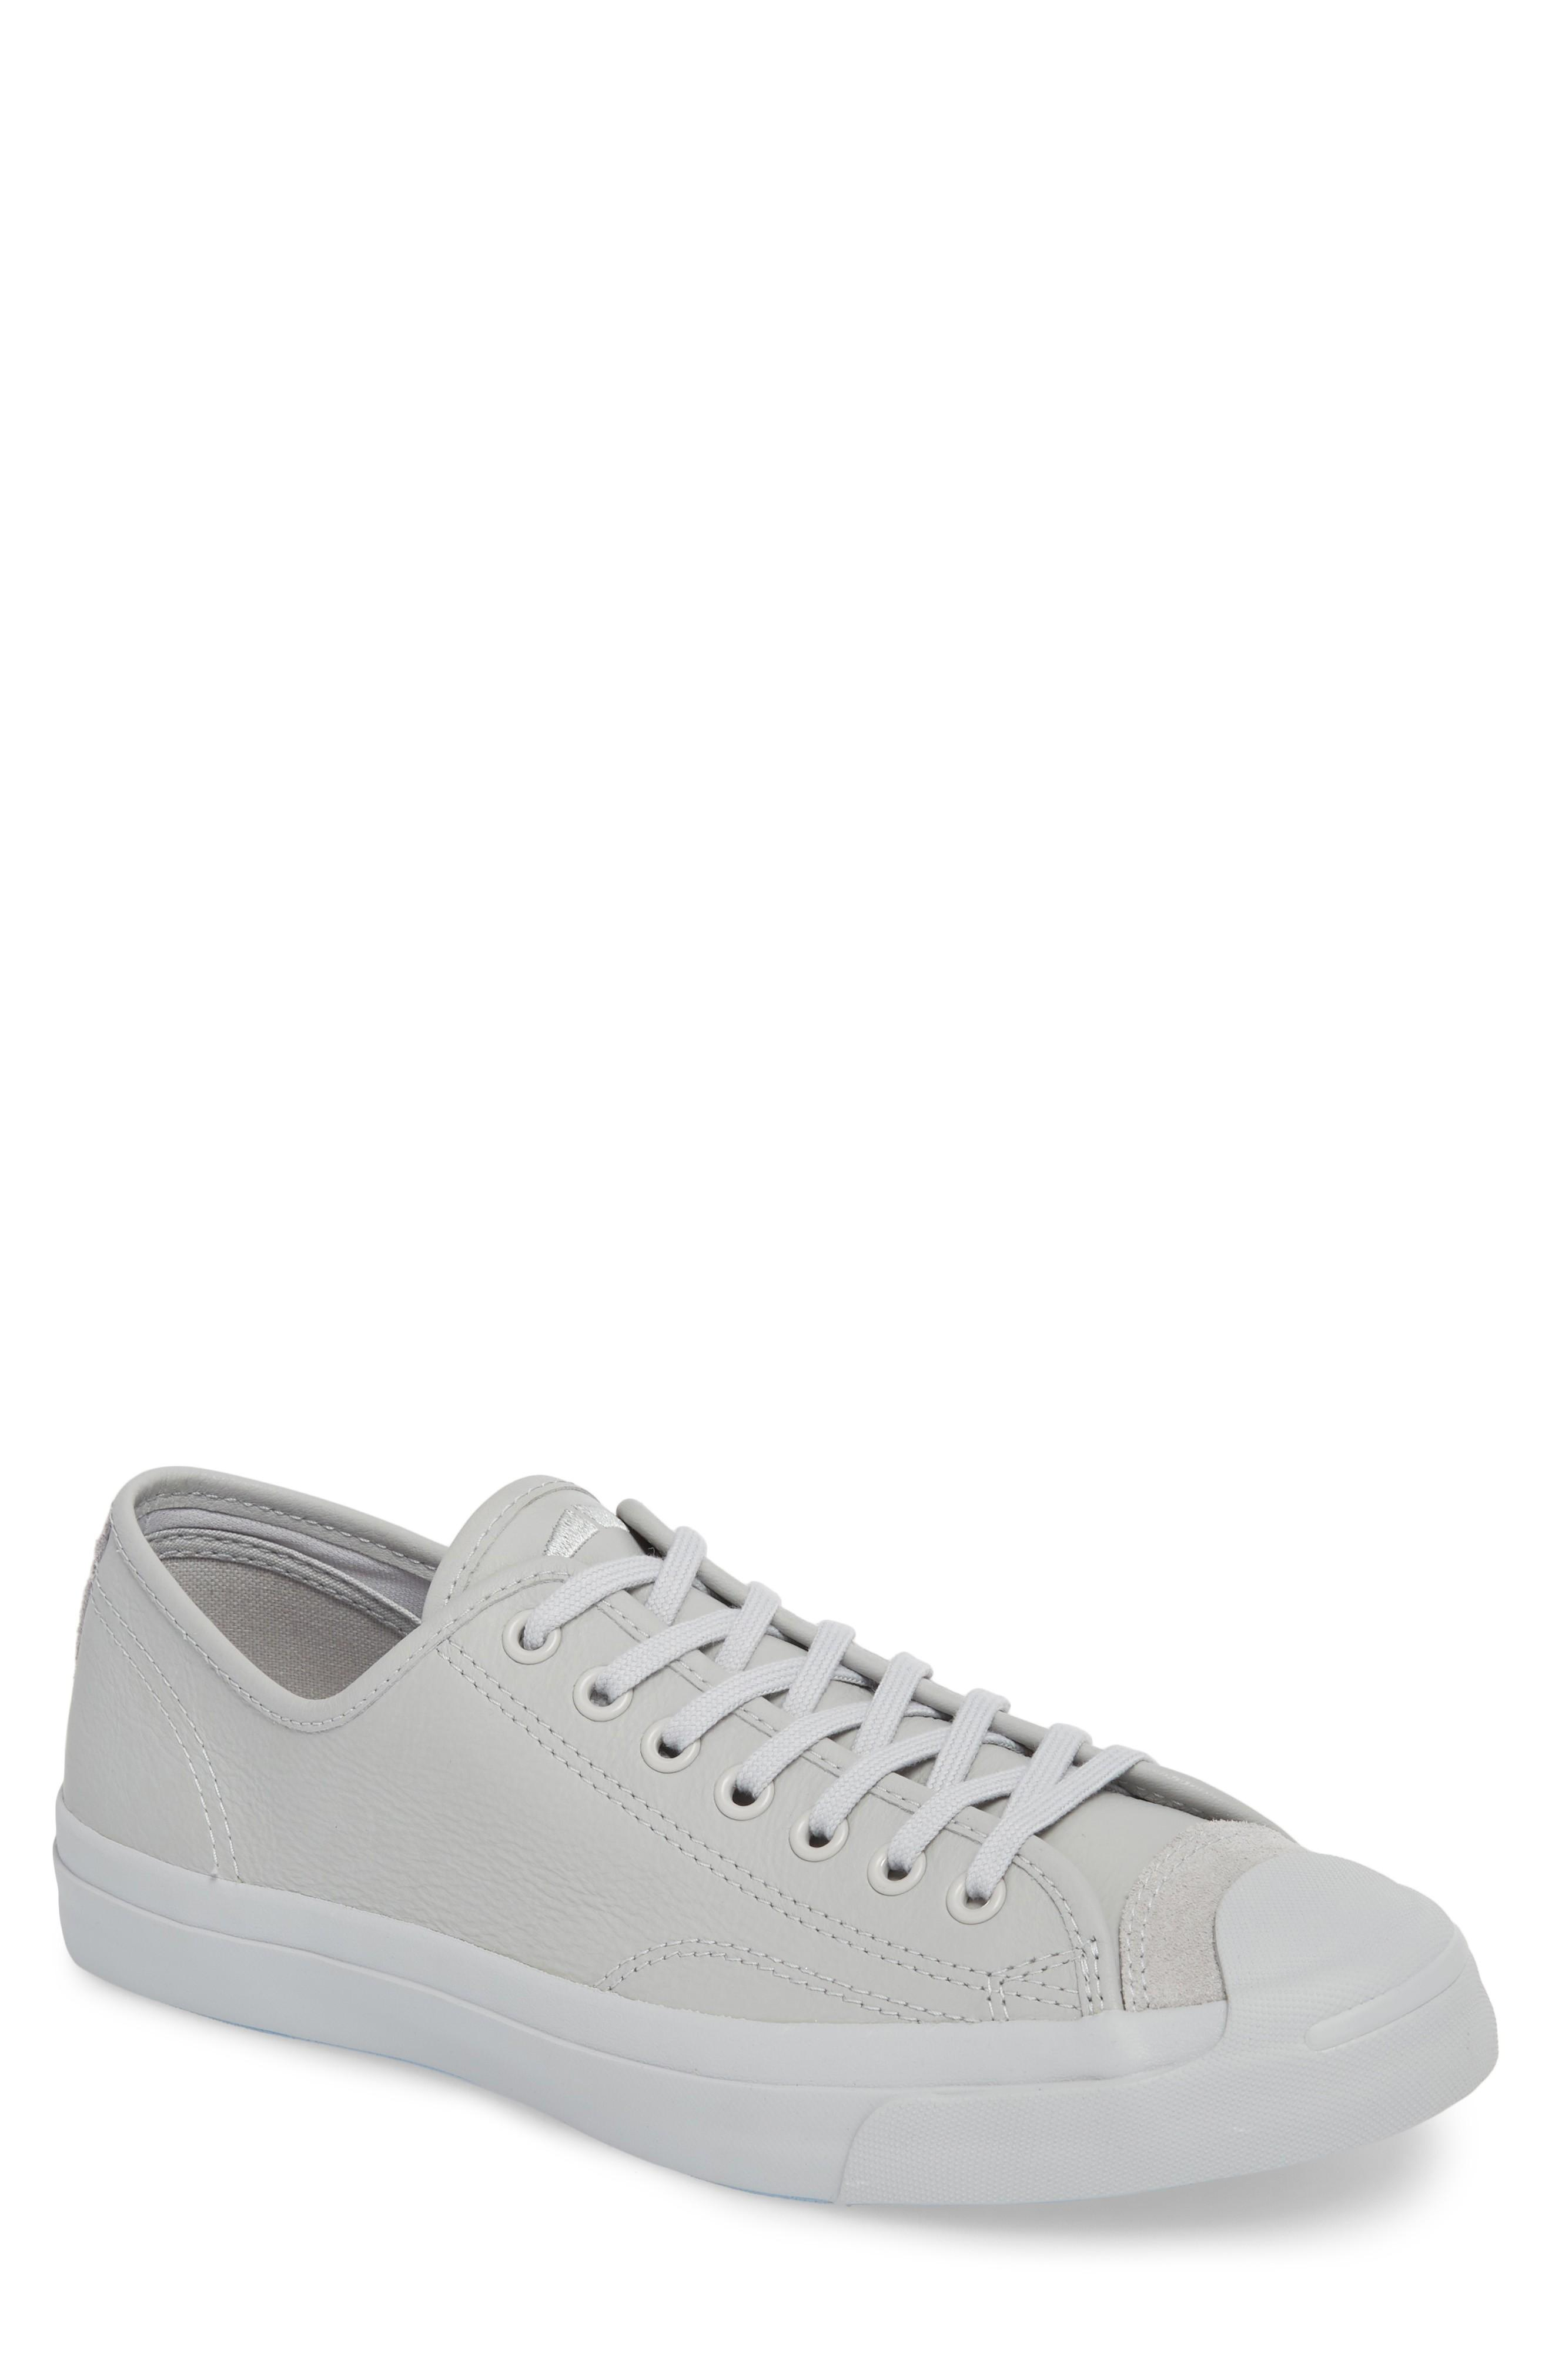 5b6afb5bca6d Converse Jack Purcell Marble Wash Sneaker In Ash Grey Leather